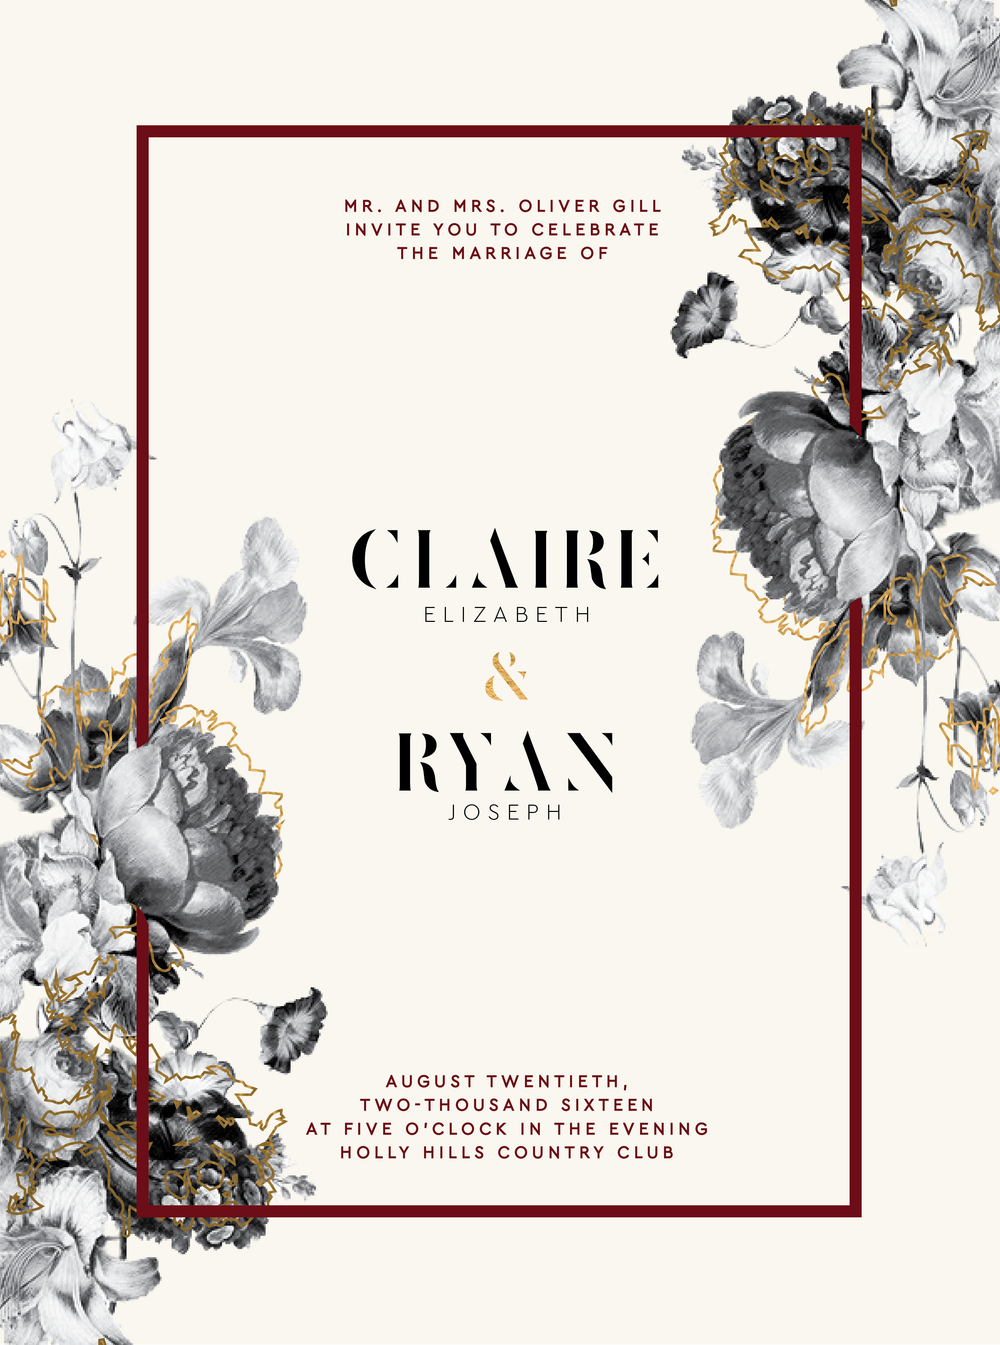 Modern Hollywood Wedding Invitations.jpg